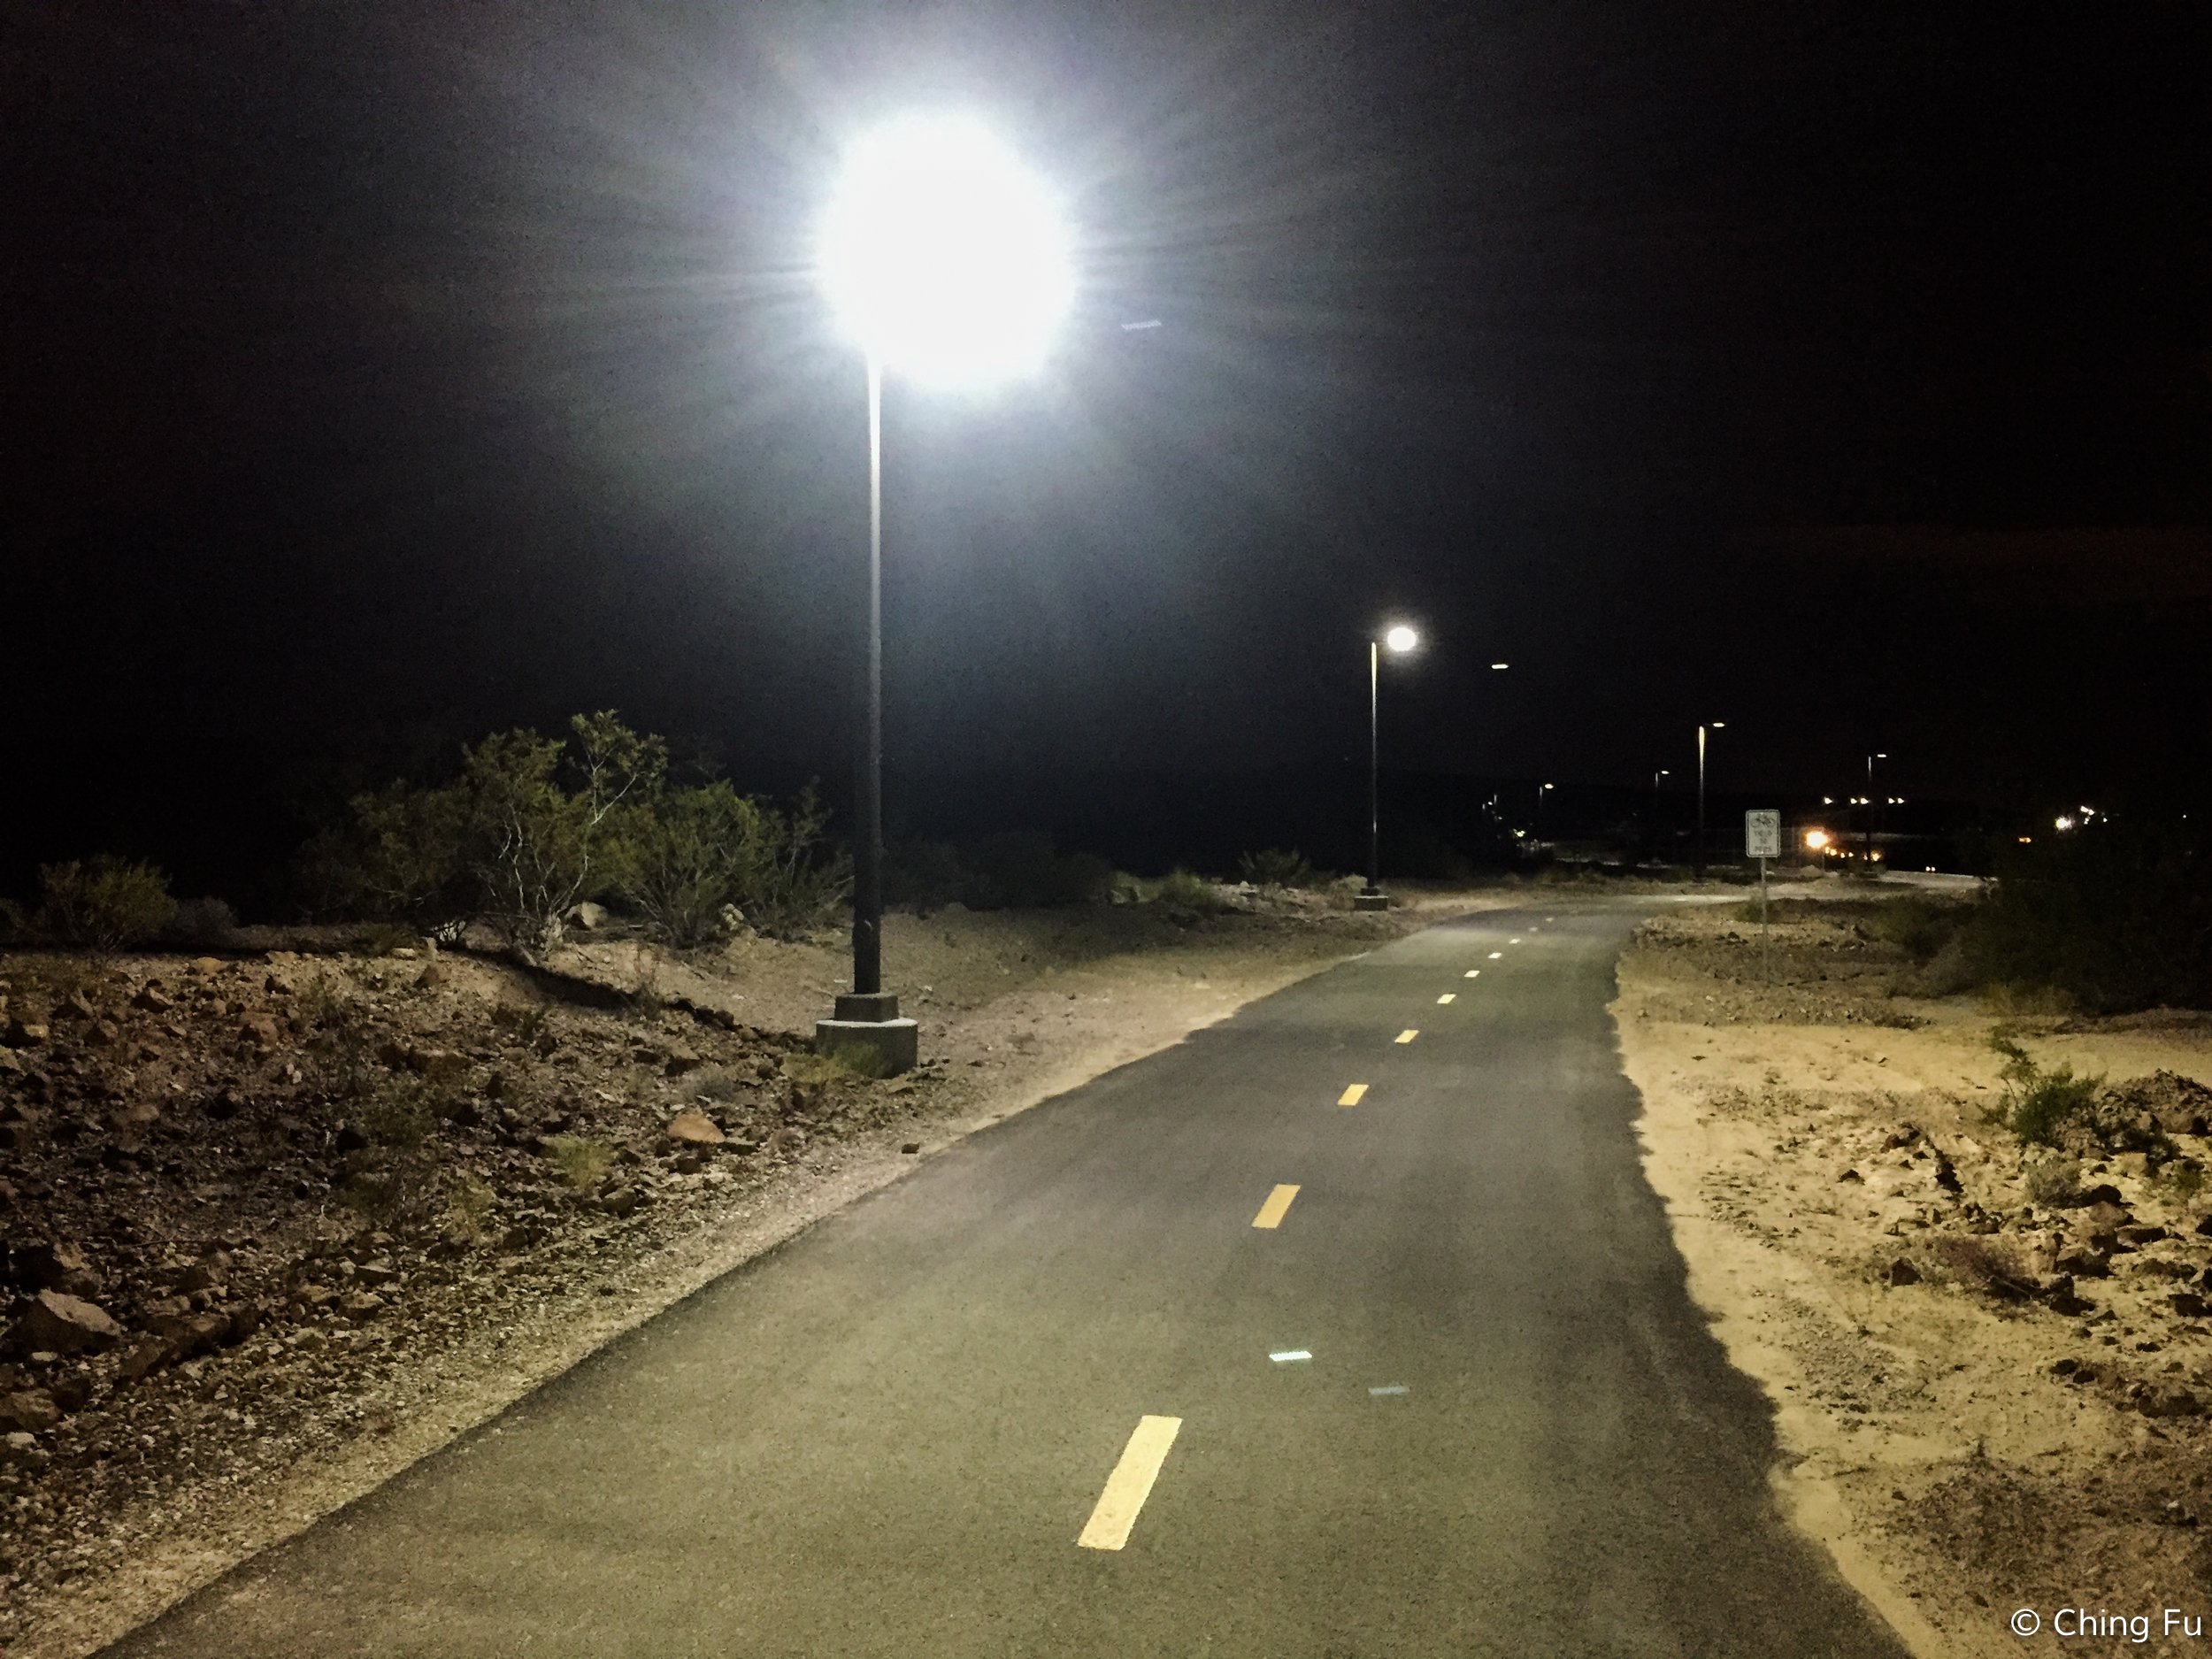 Best path lights ever - the lights are on dimly all the time, but brighten when they detect motion.